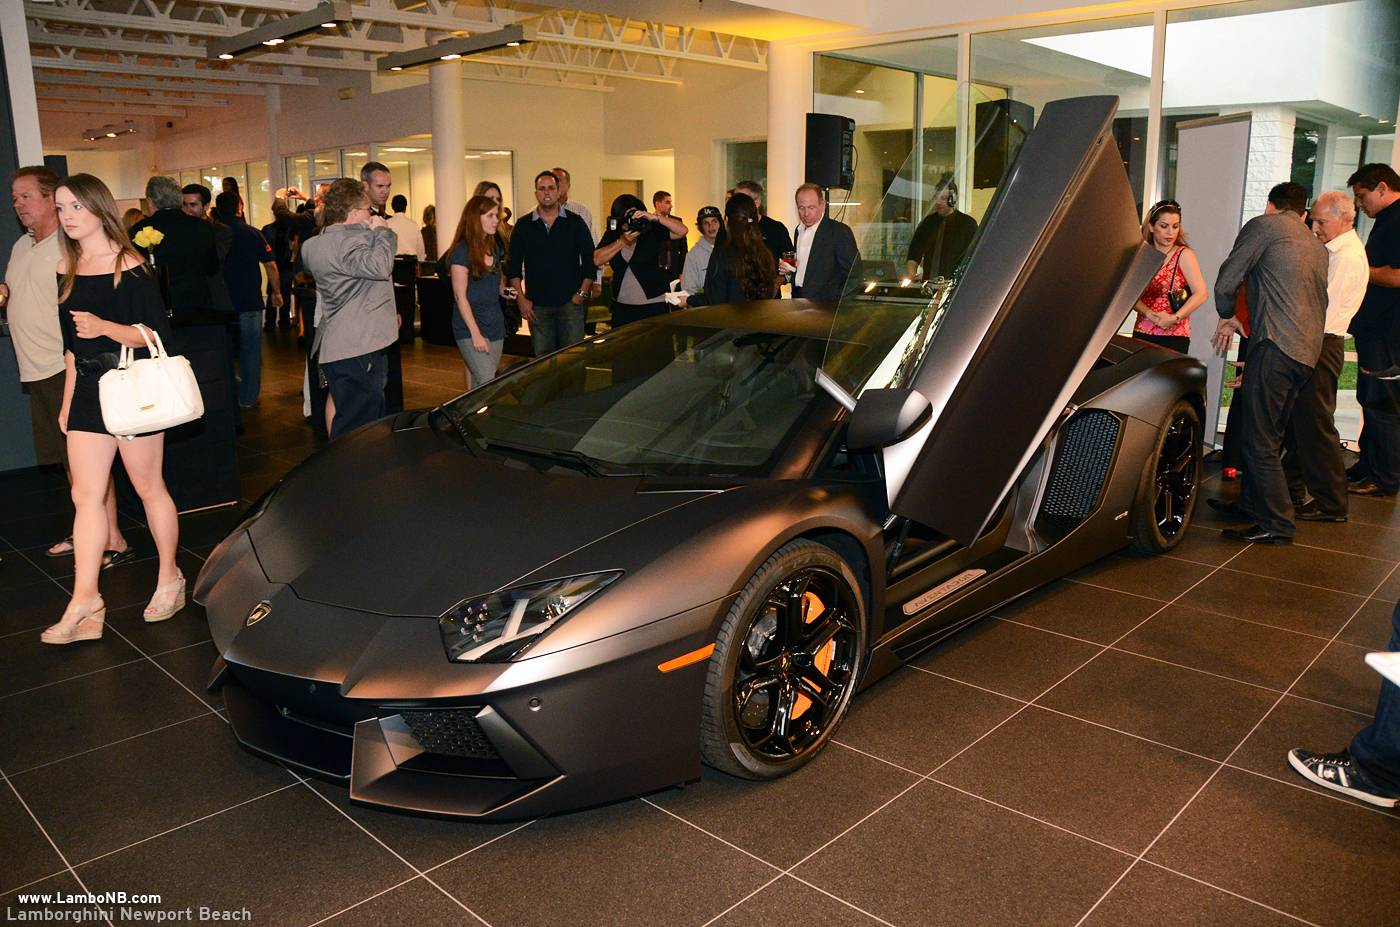 Lamborghini Newport Beach Celebrates Grand Opening With Unveiling Of - Lamborghini newport beach car show 2018